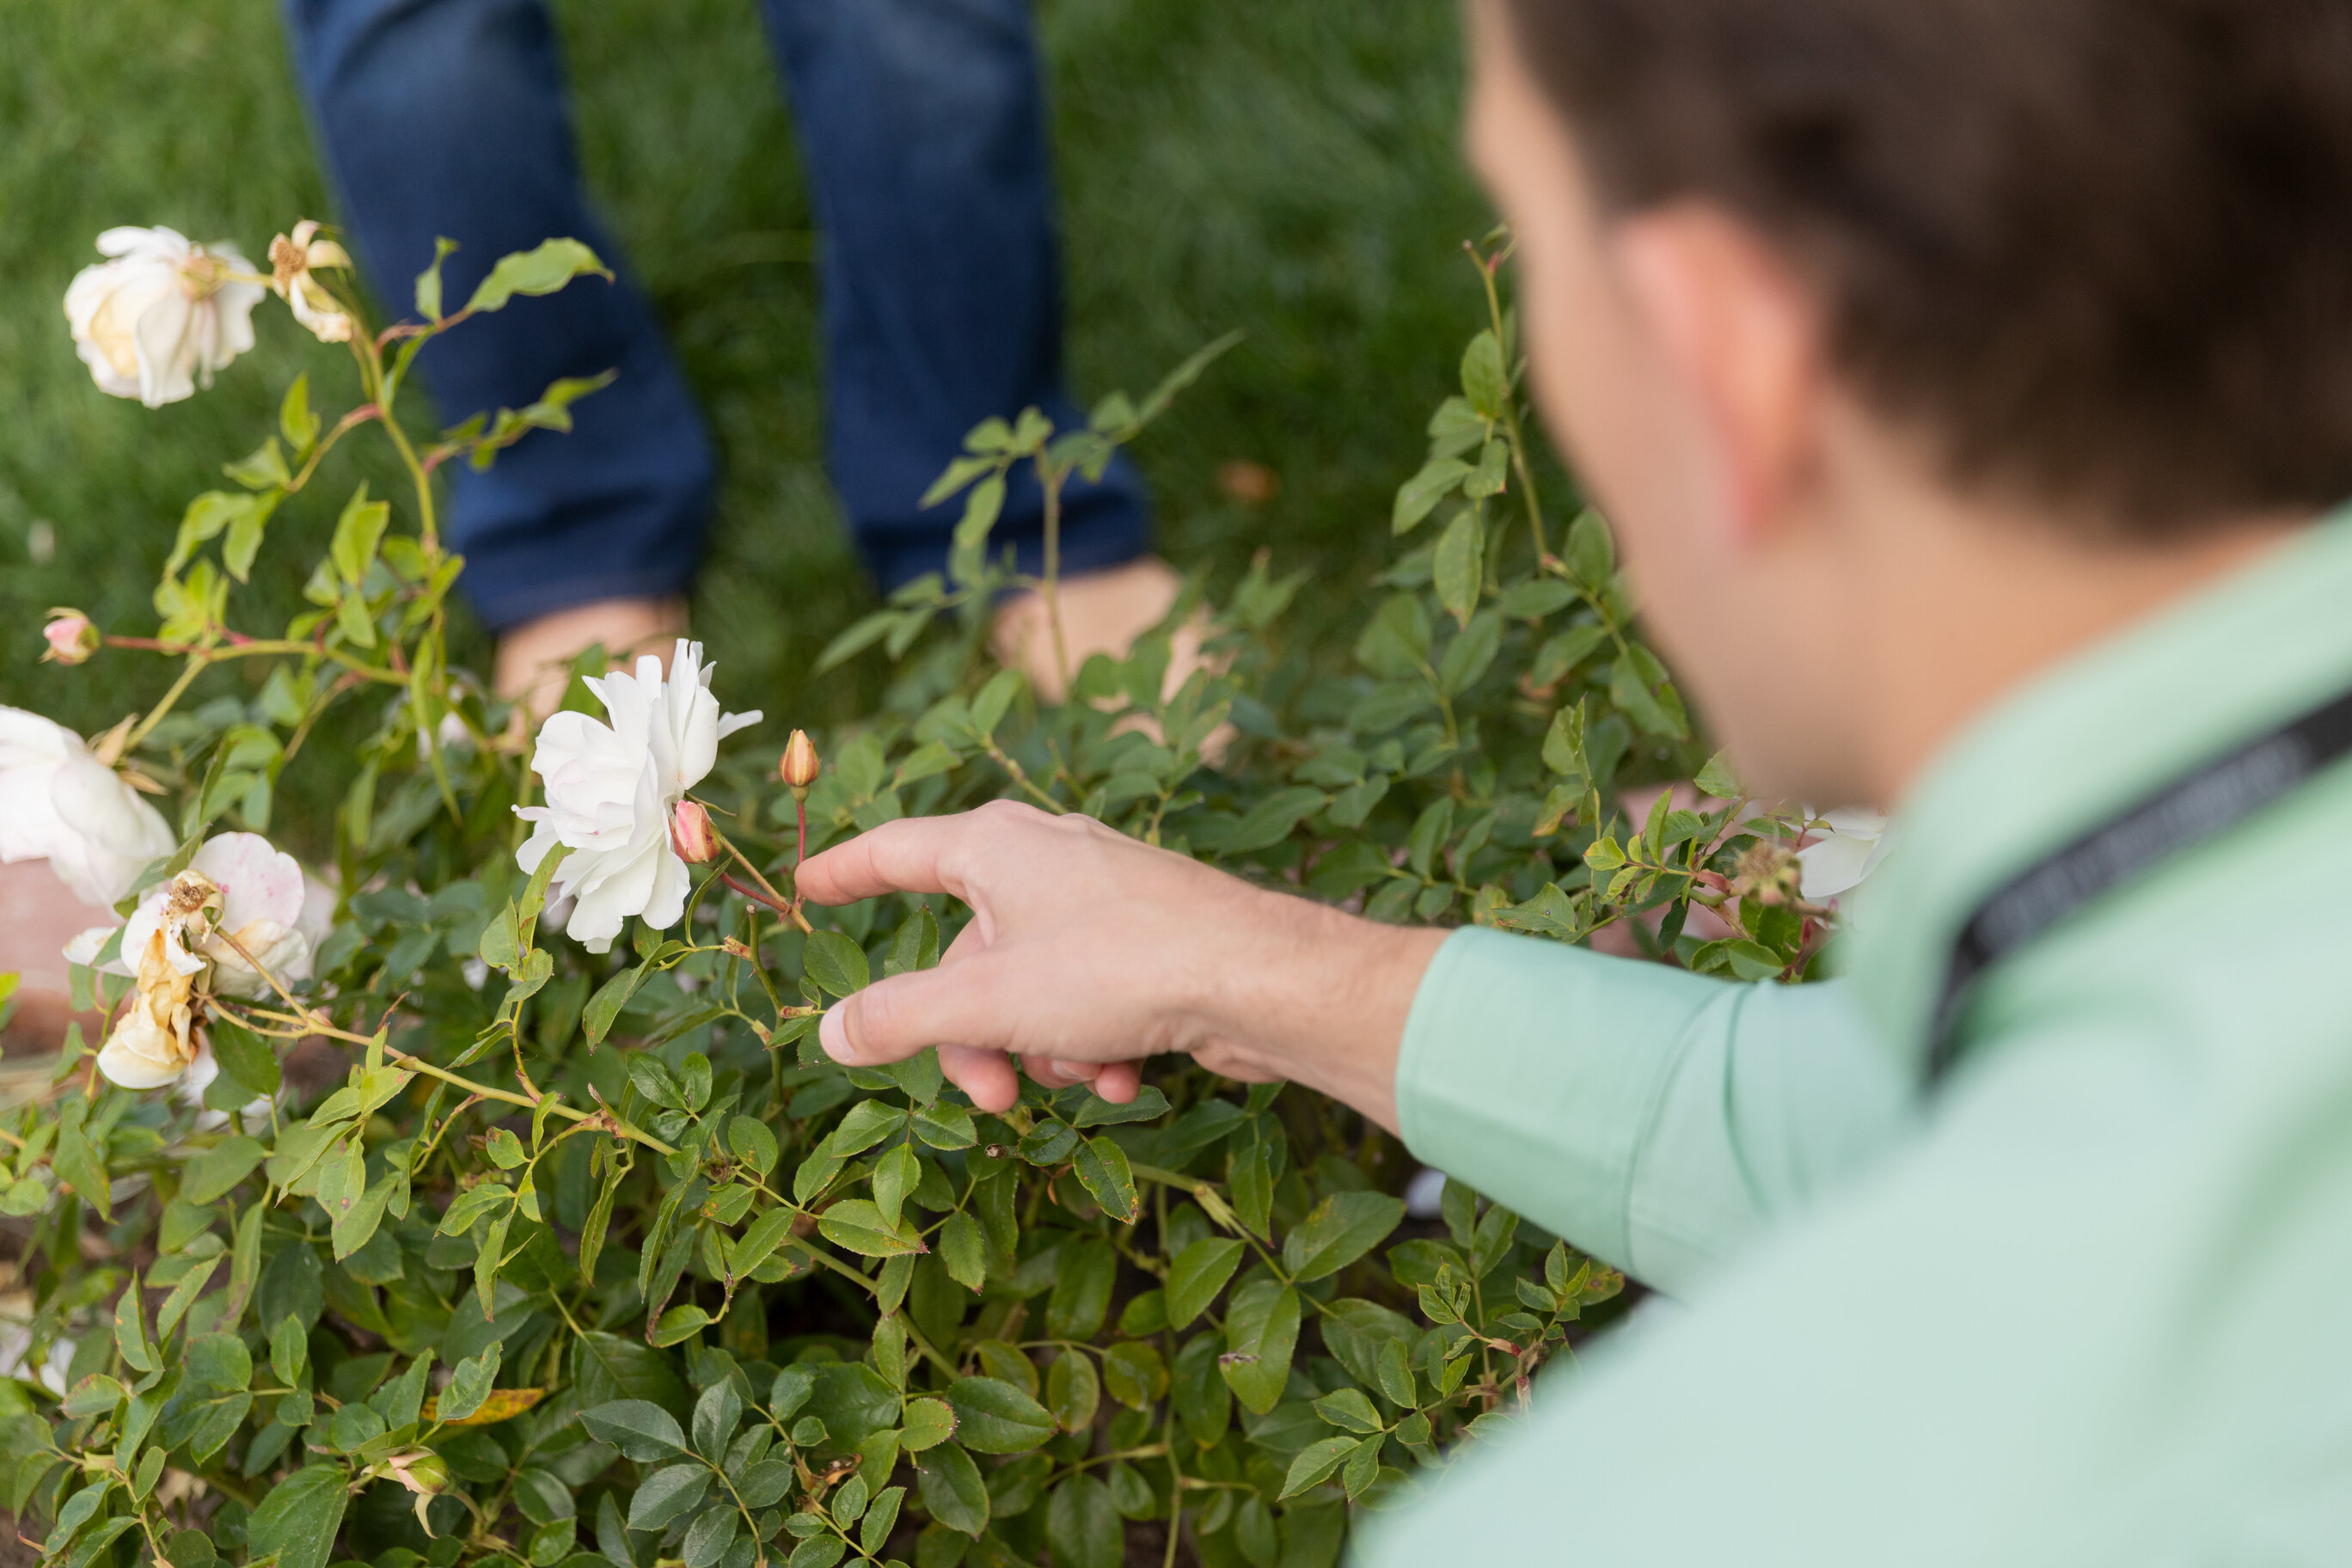 A pest control specialist wearing a green shirt points to white flowers on a green bush that have been affected by pests.